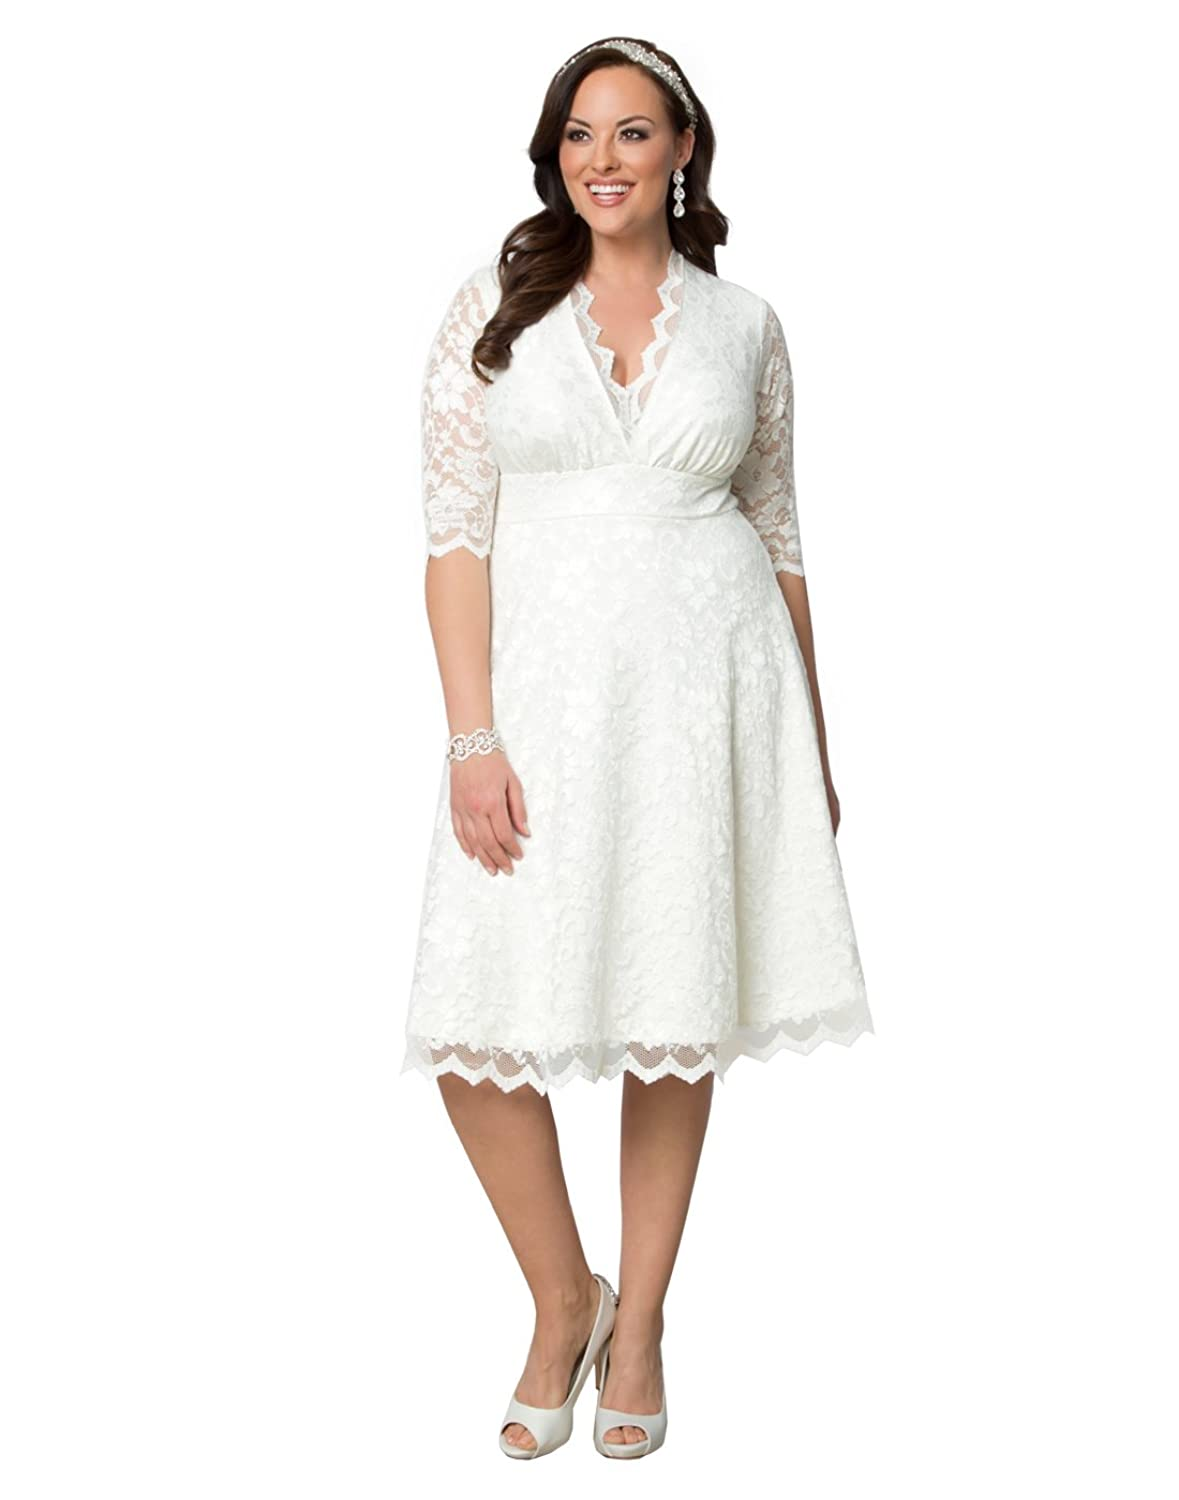 1940s Style Wedding Dresses and Accessories Kiyonna Womens Plus Size Wedding Belle Dress $248.00 AT vintagedancer.com